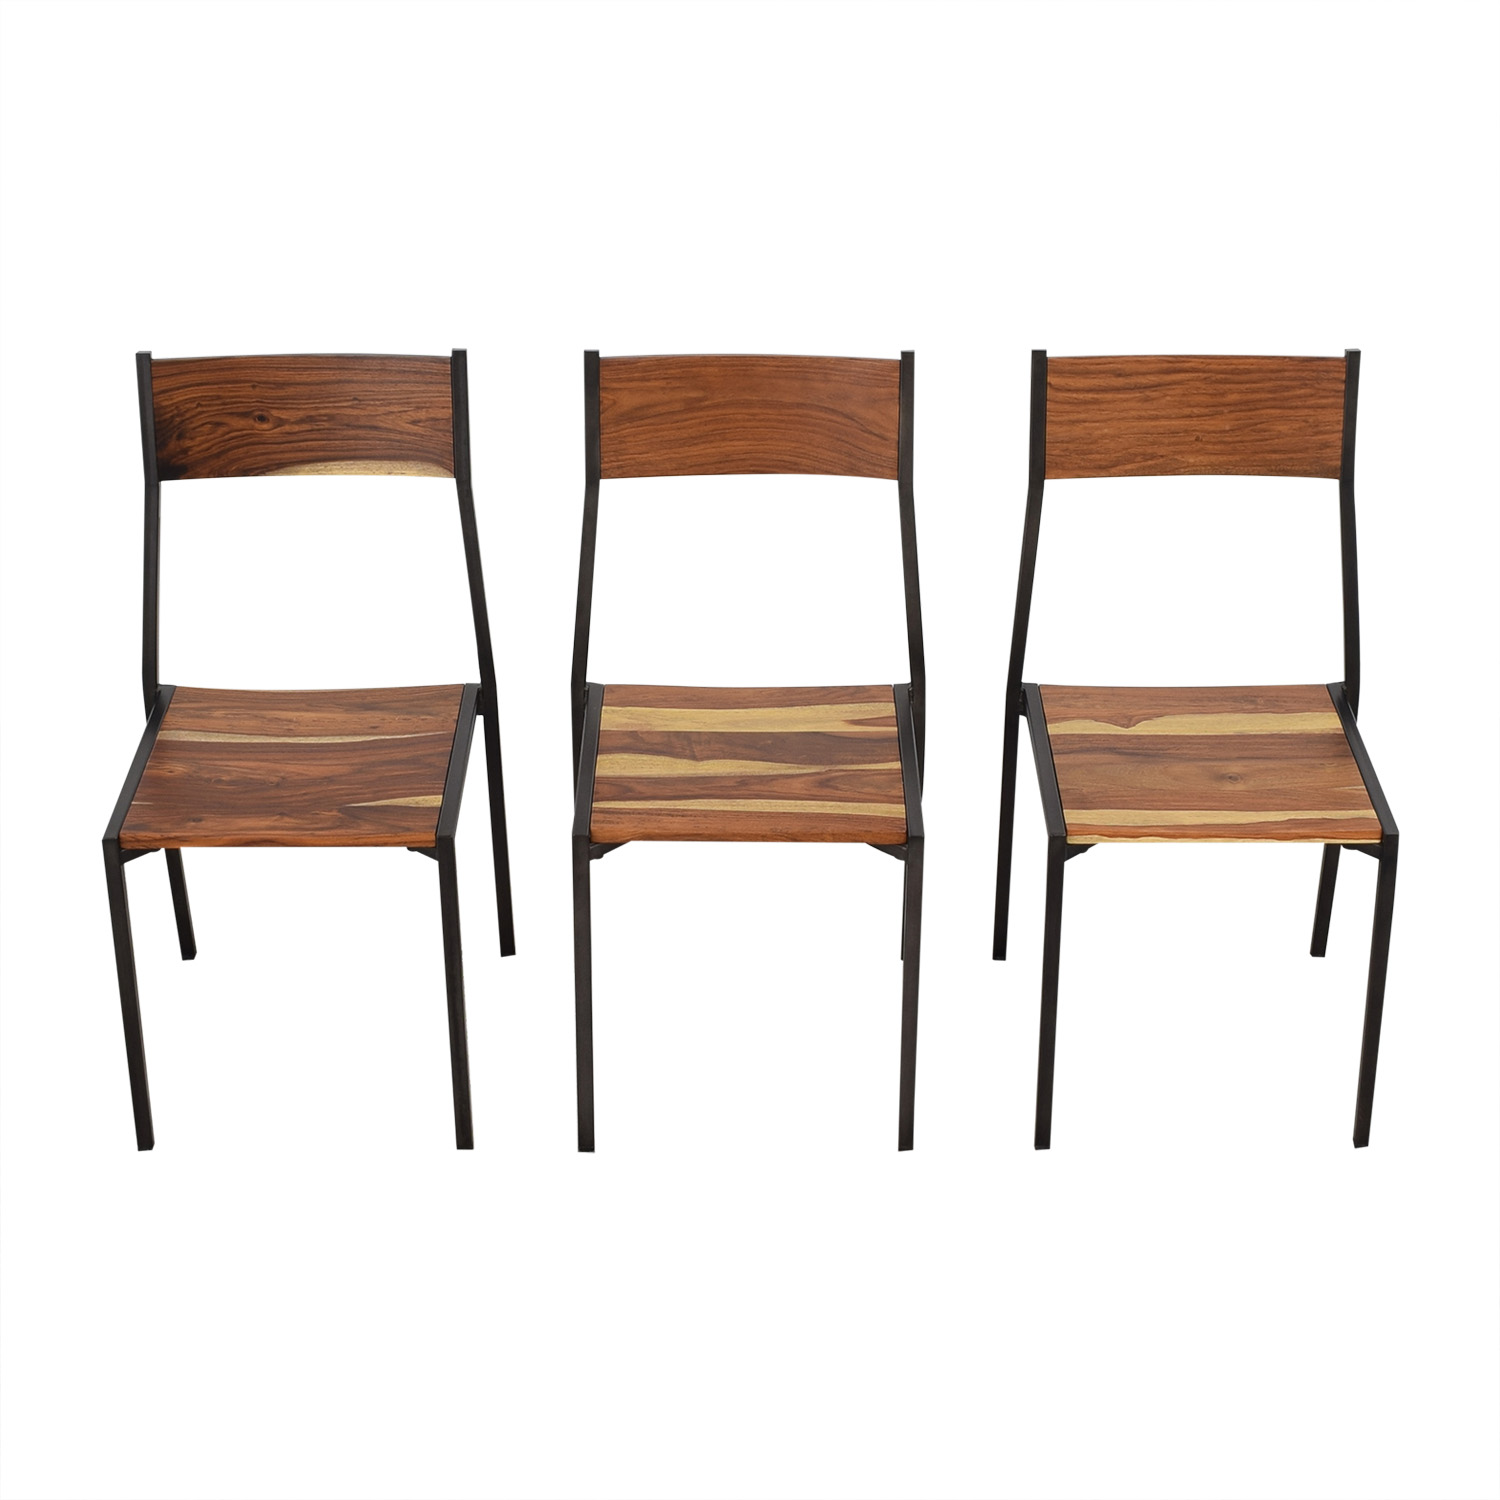 From the Source From the Source Finch Dining Chairs Dining Chairs